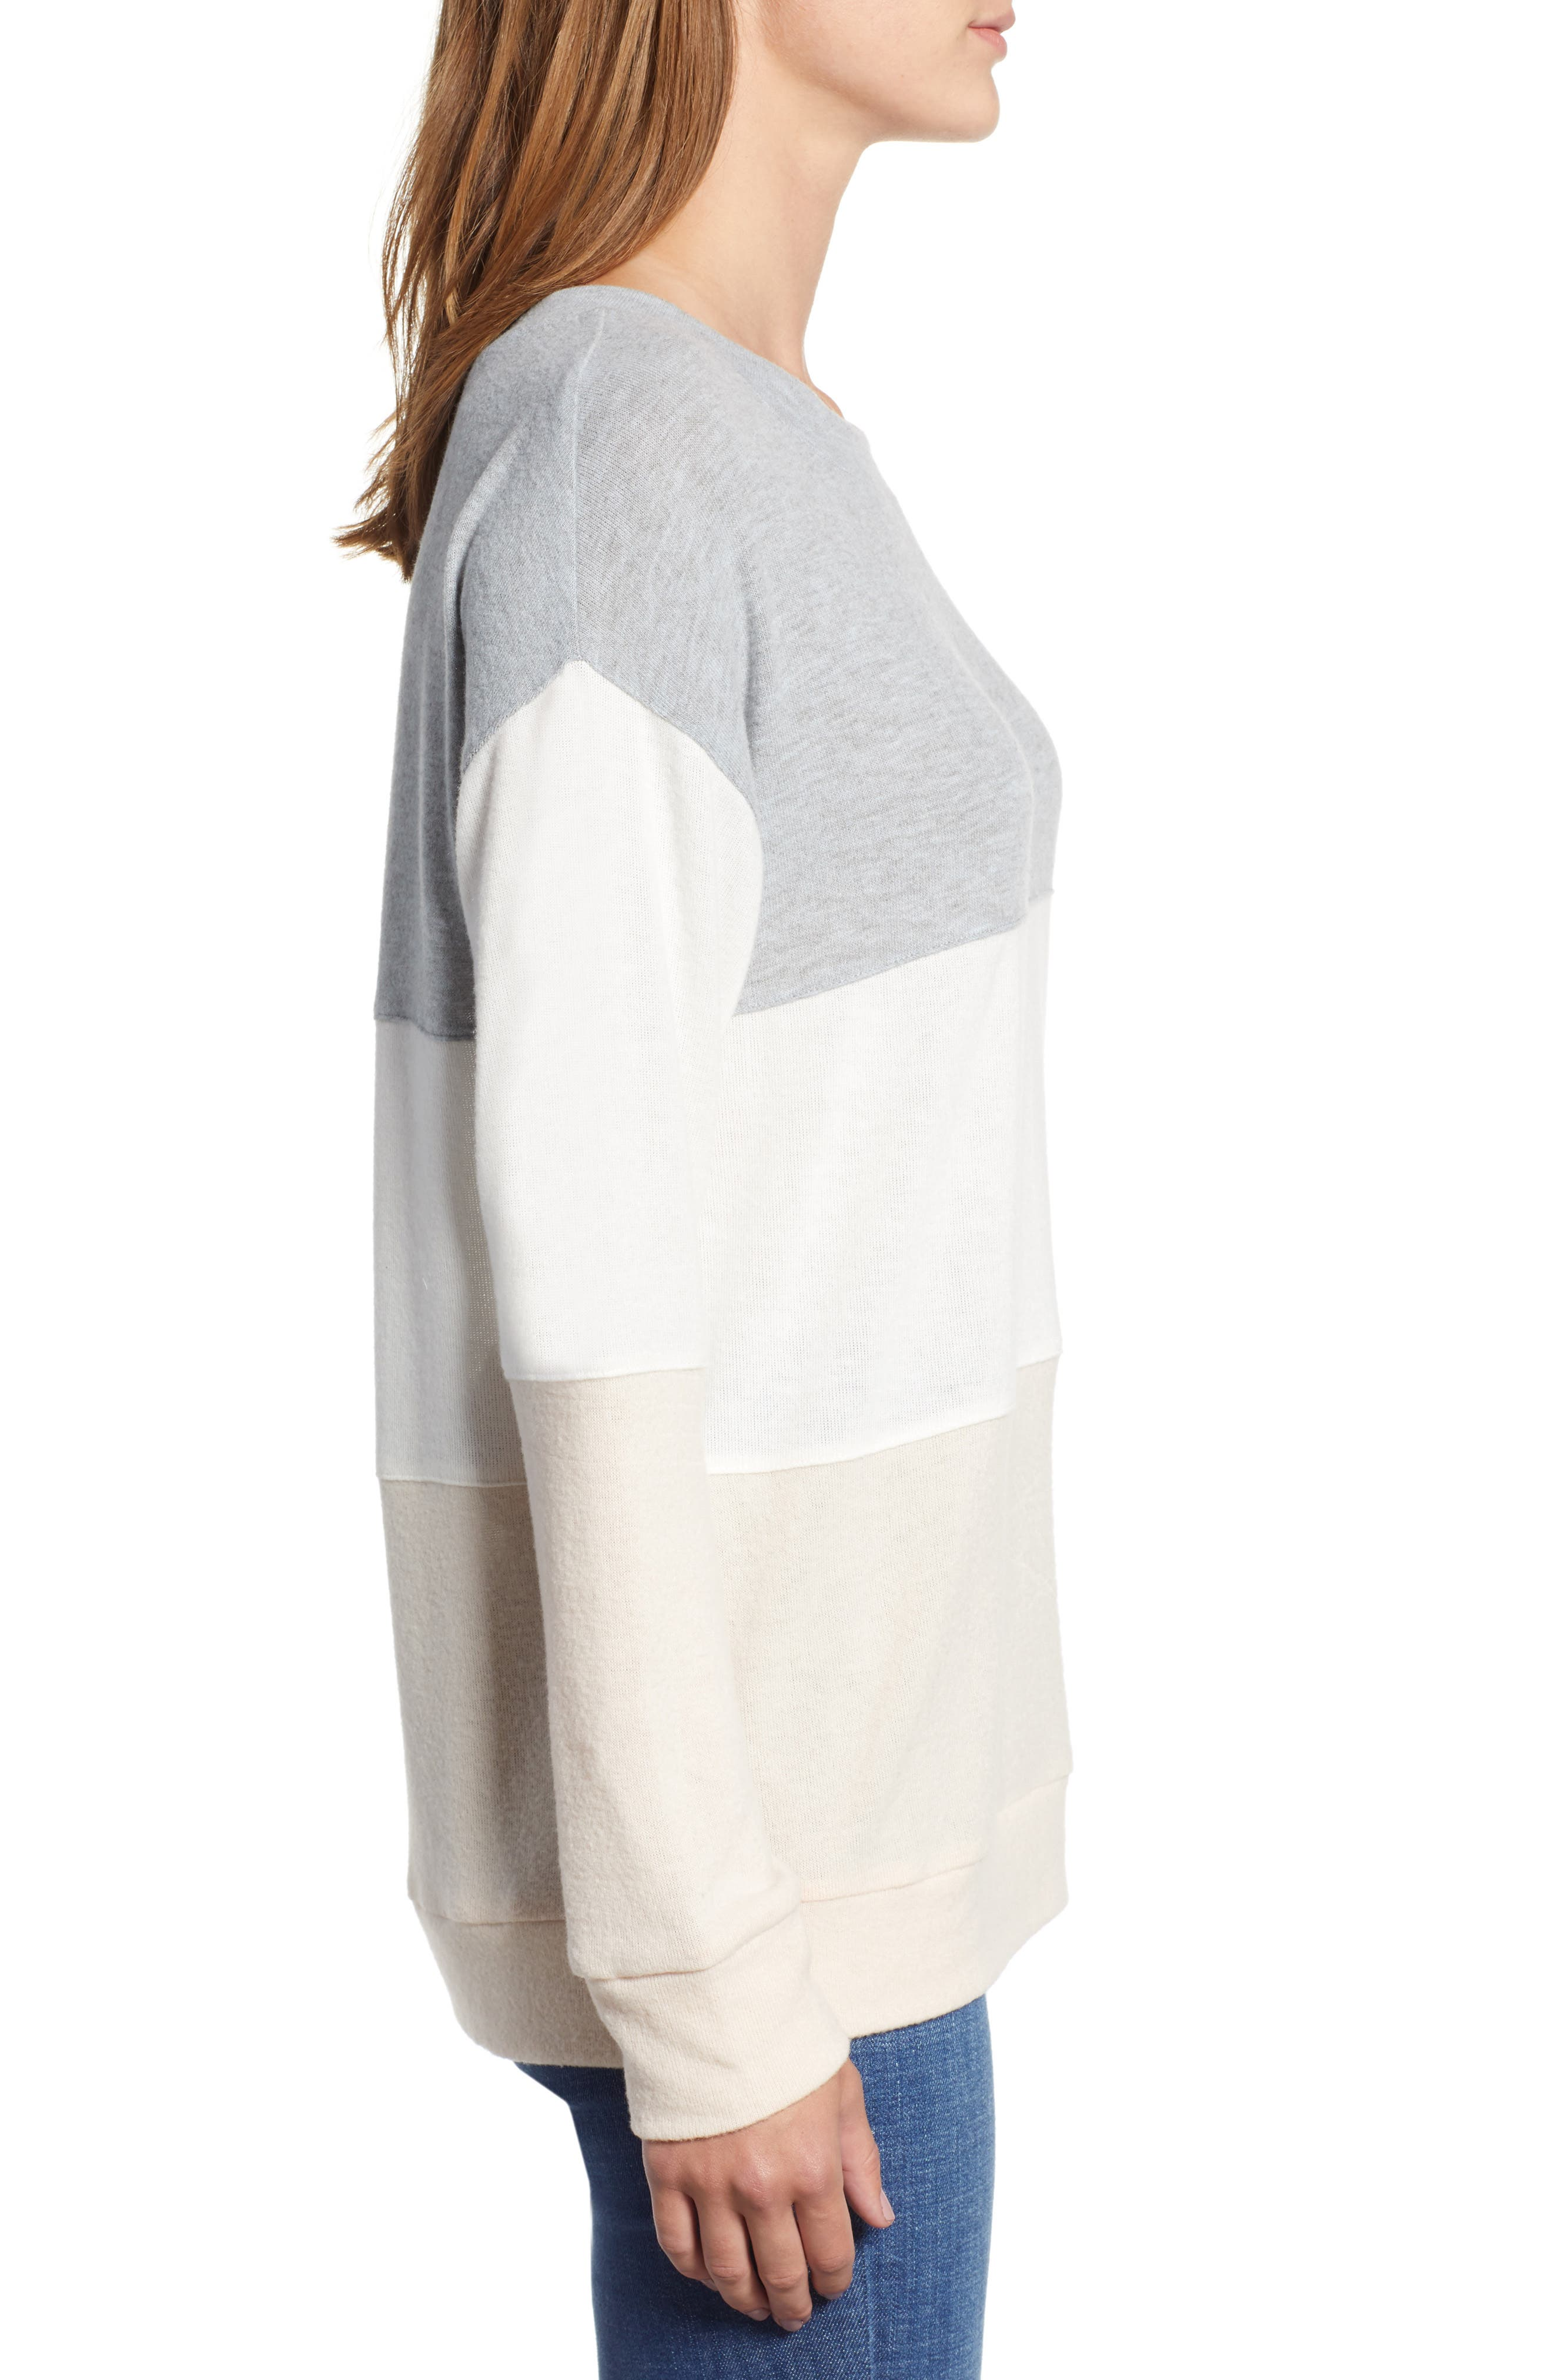 Colorblock Sweatshirt,                             Alternate thumbnail 3, color,                             GREY/ WHITE/ PINK